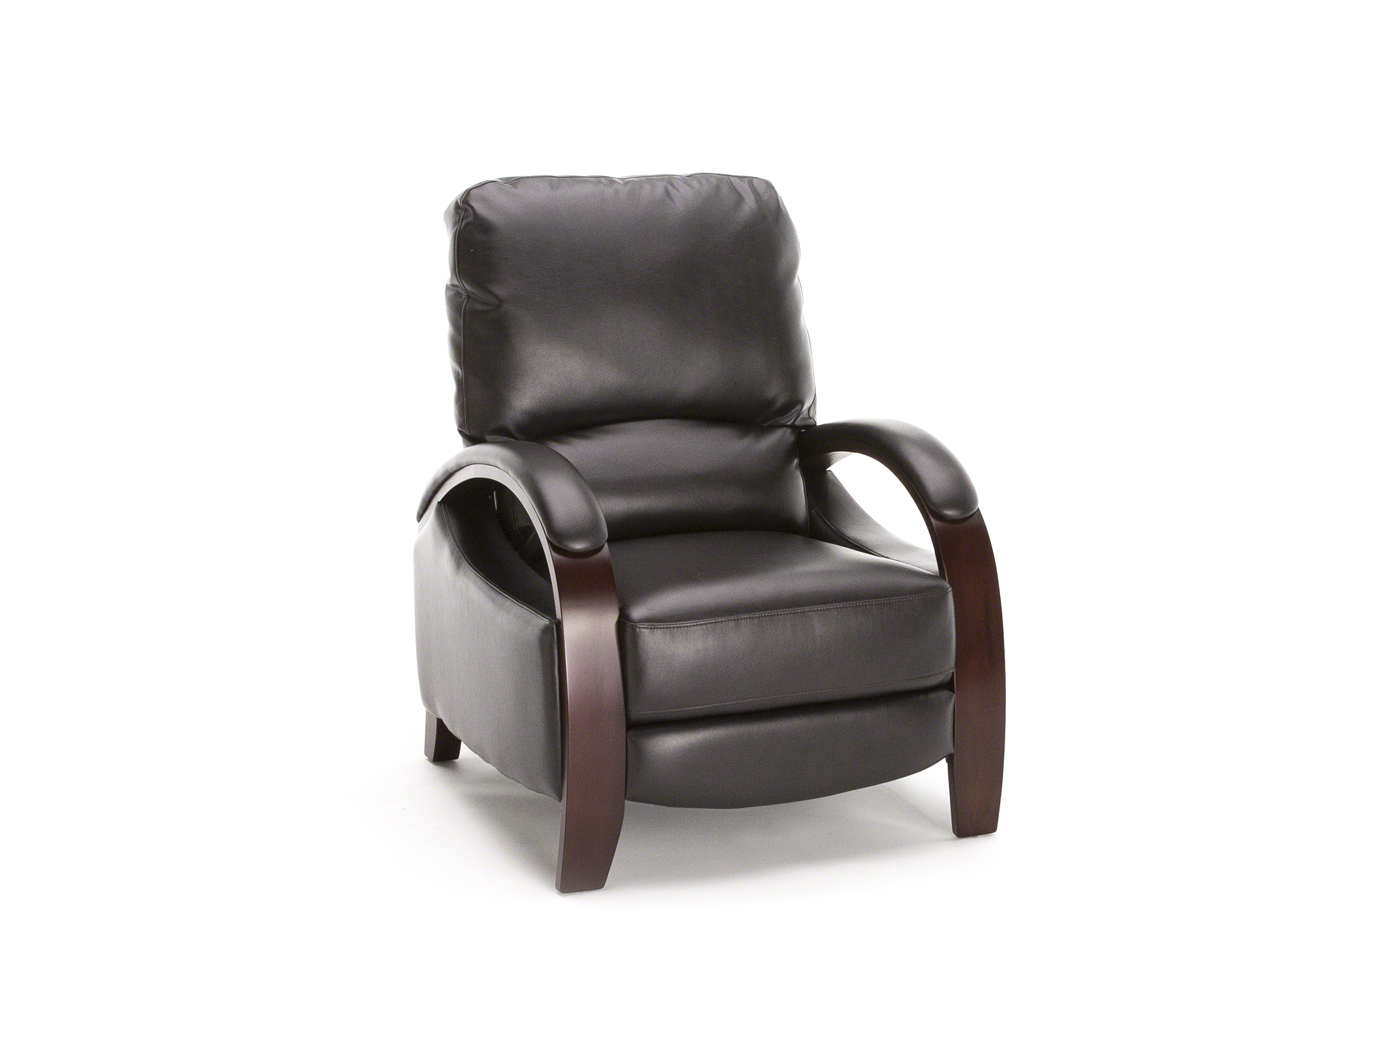 Living Room – Recliners | Steinhafels For Hercules Chocolate Swivel Glider Recliners (View 20 of 20)